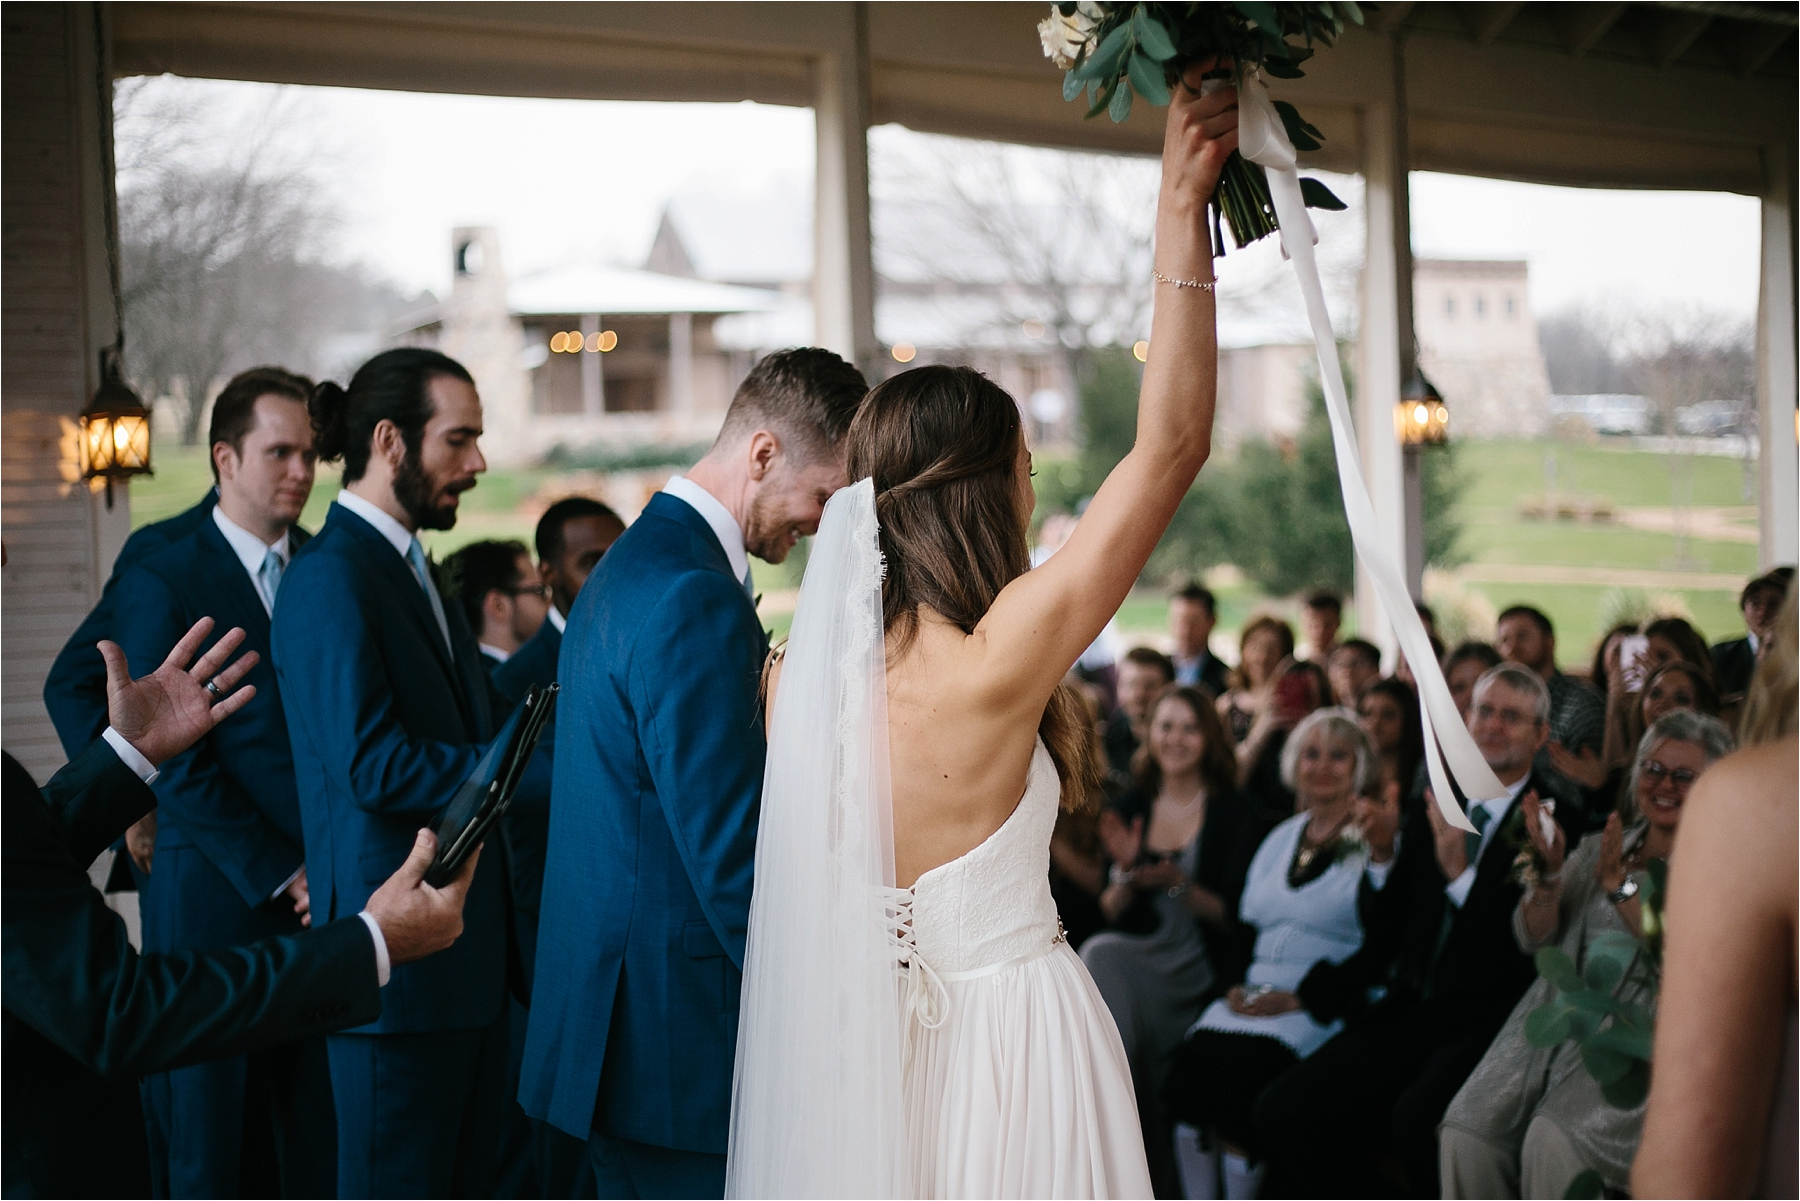 Lauren + Matt __ an intimate, emotional, blush pink, navy blue, and greenery toned wedding accents at the Brooks at Weatherford by North Texas Wedding Photographer Rachel Meagan Photography138